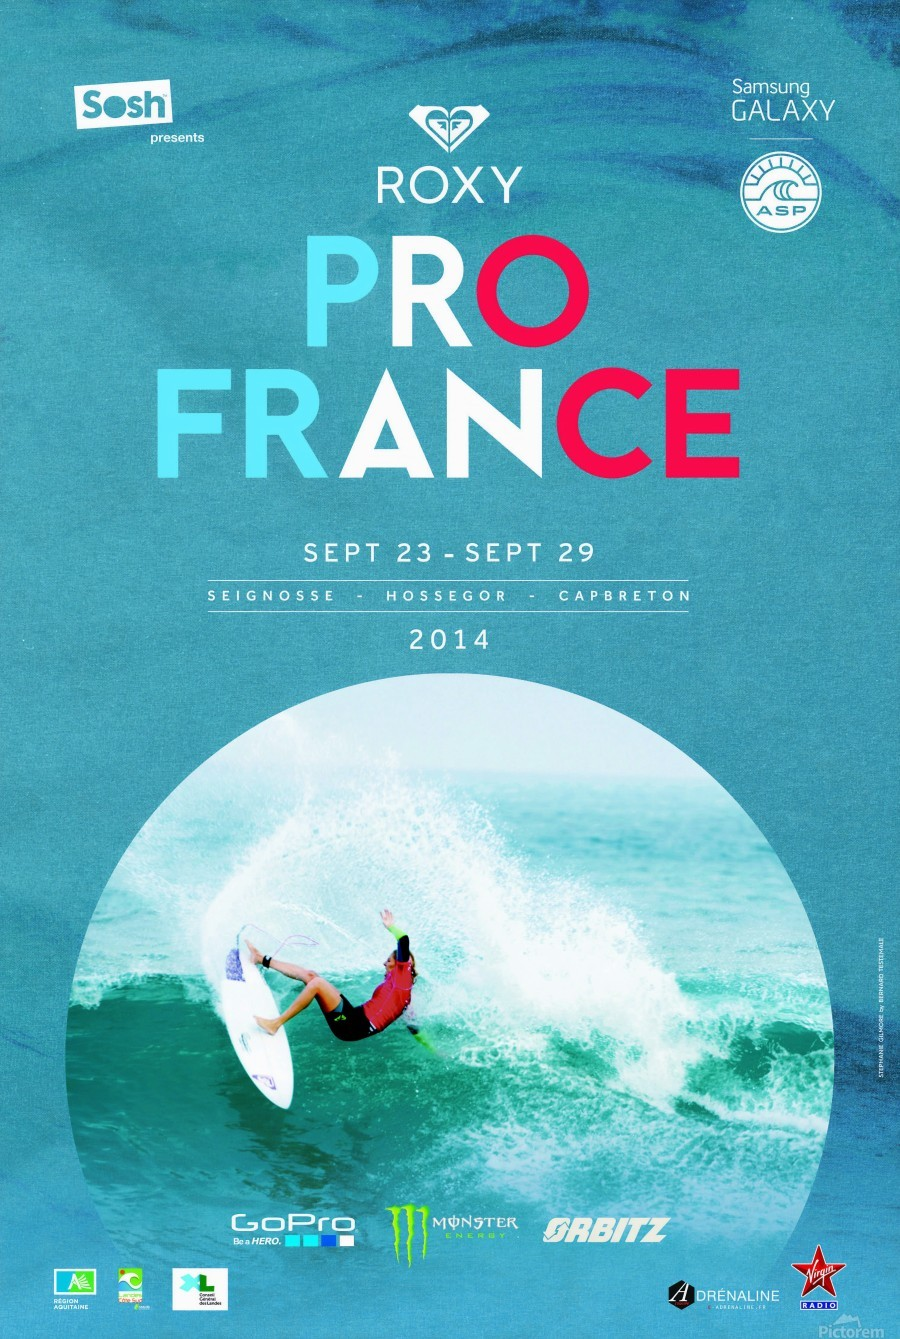 2014 ROXY PRO FRANCE Surfing Competition Poster  Print